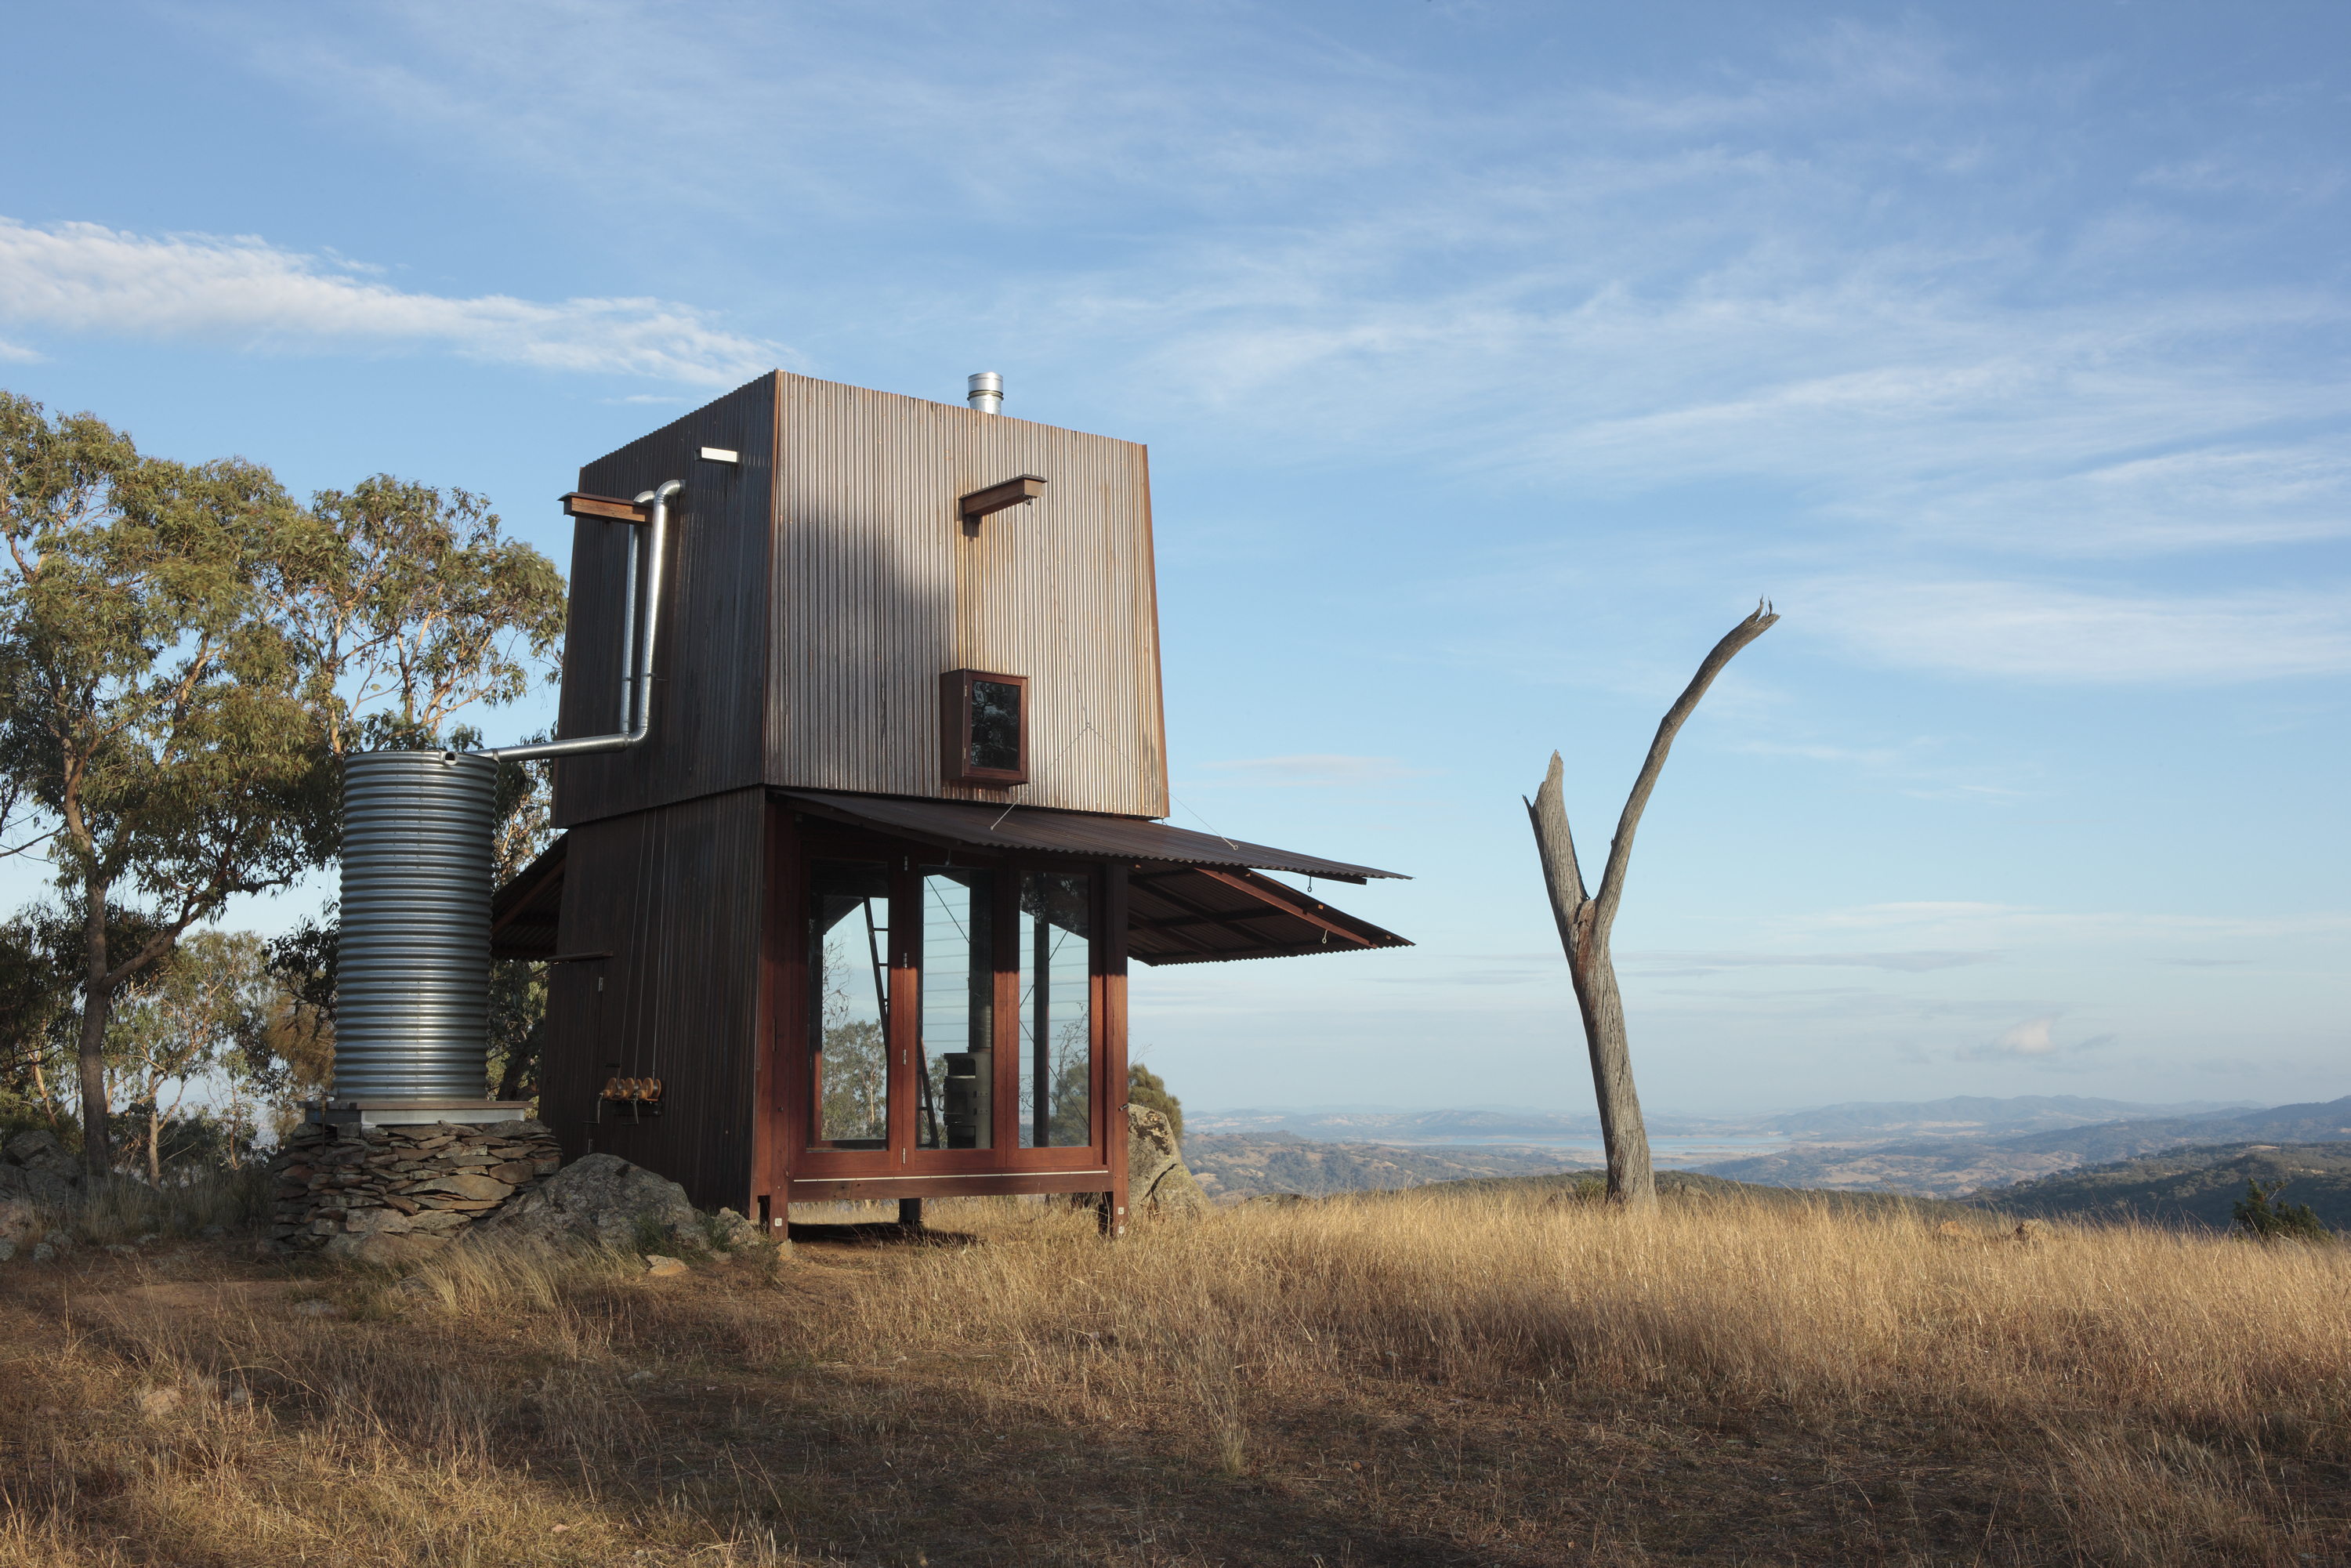 Permanent camping mudgee sydney living museums for Architecture design company in australia